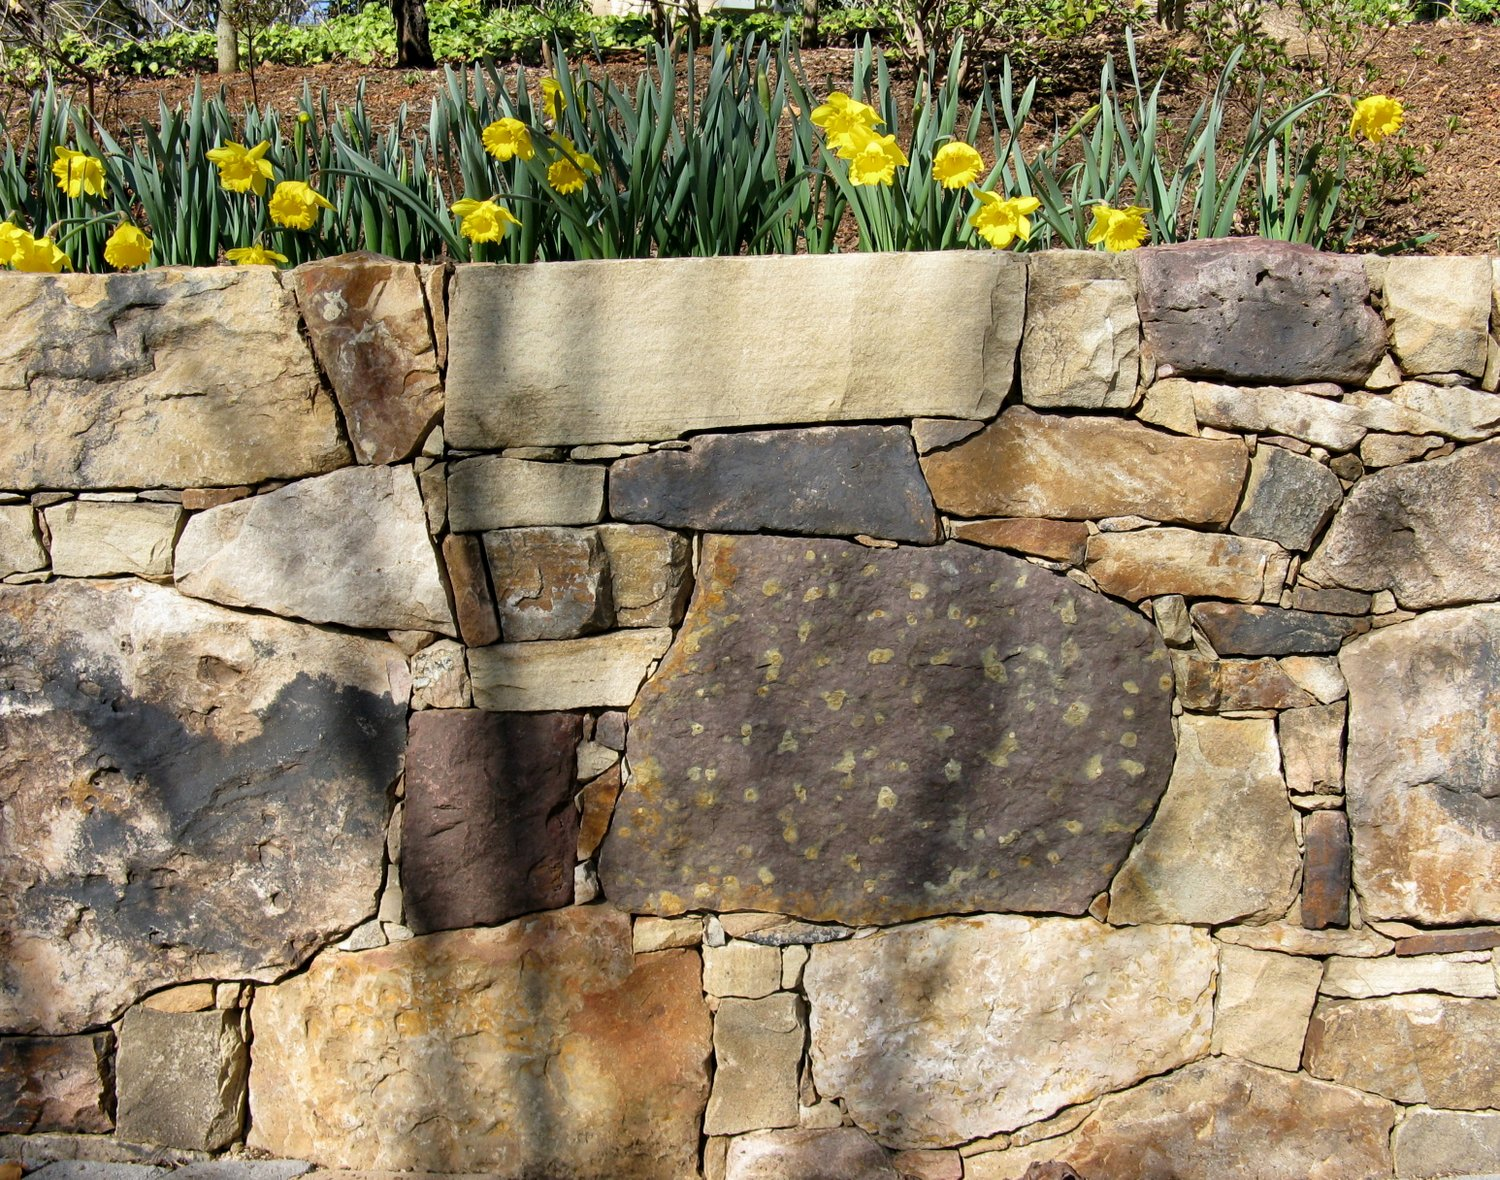 Stonework with horizontal flow and few vertical joints